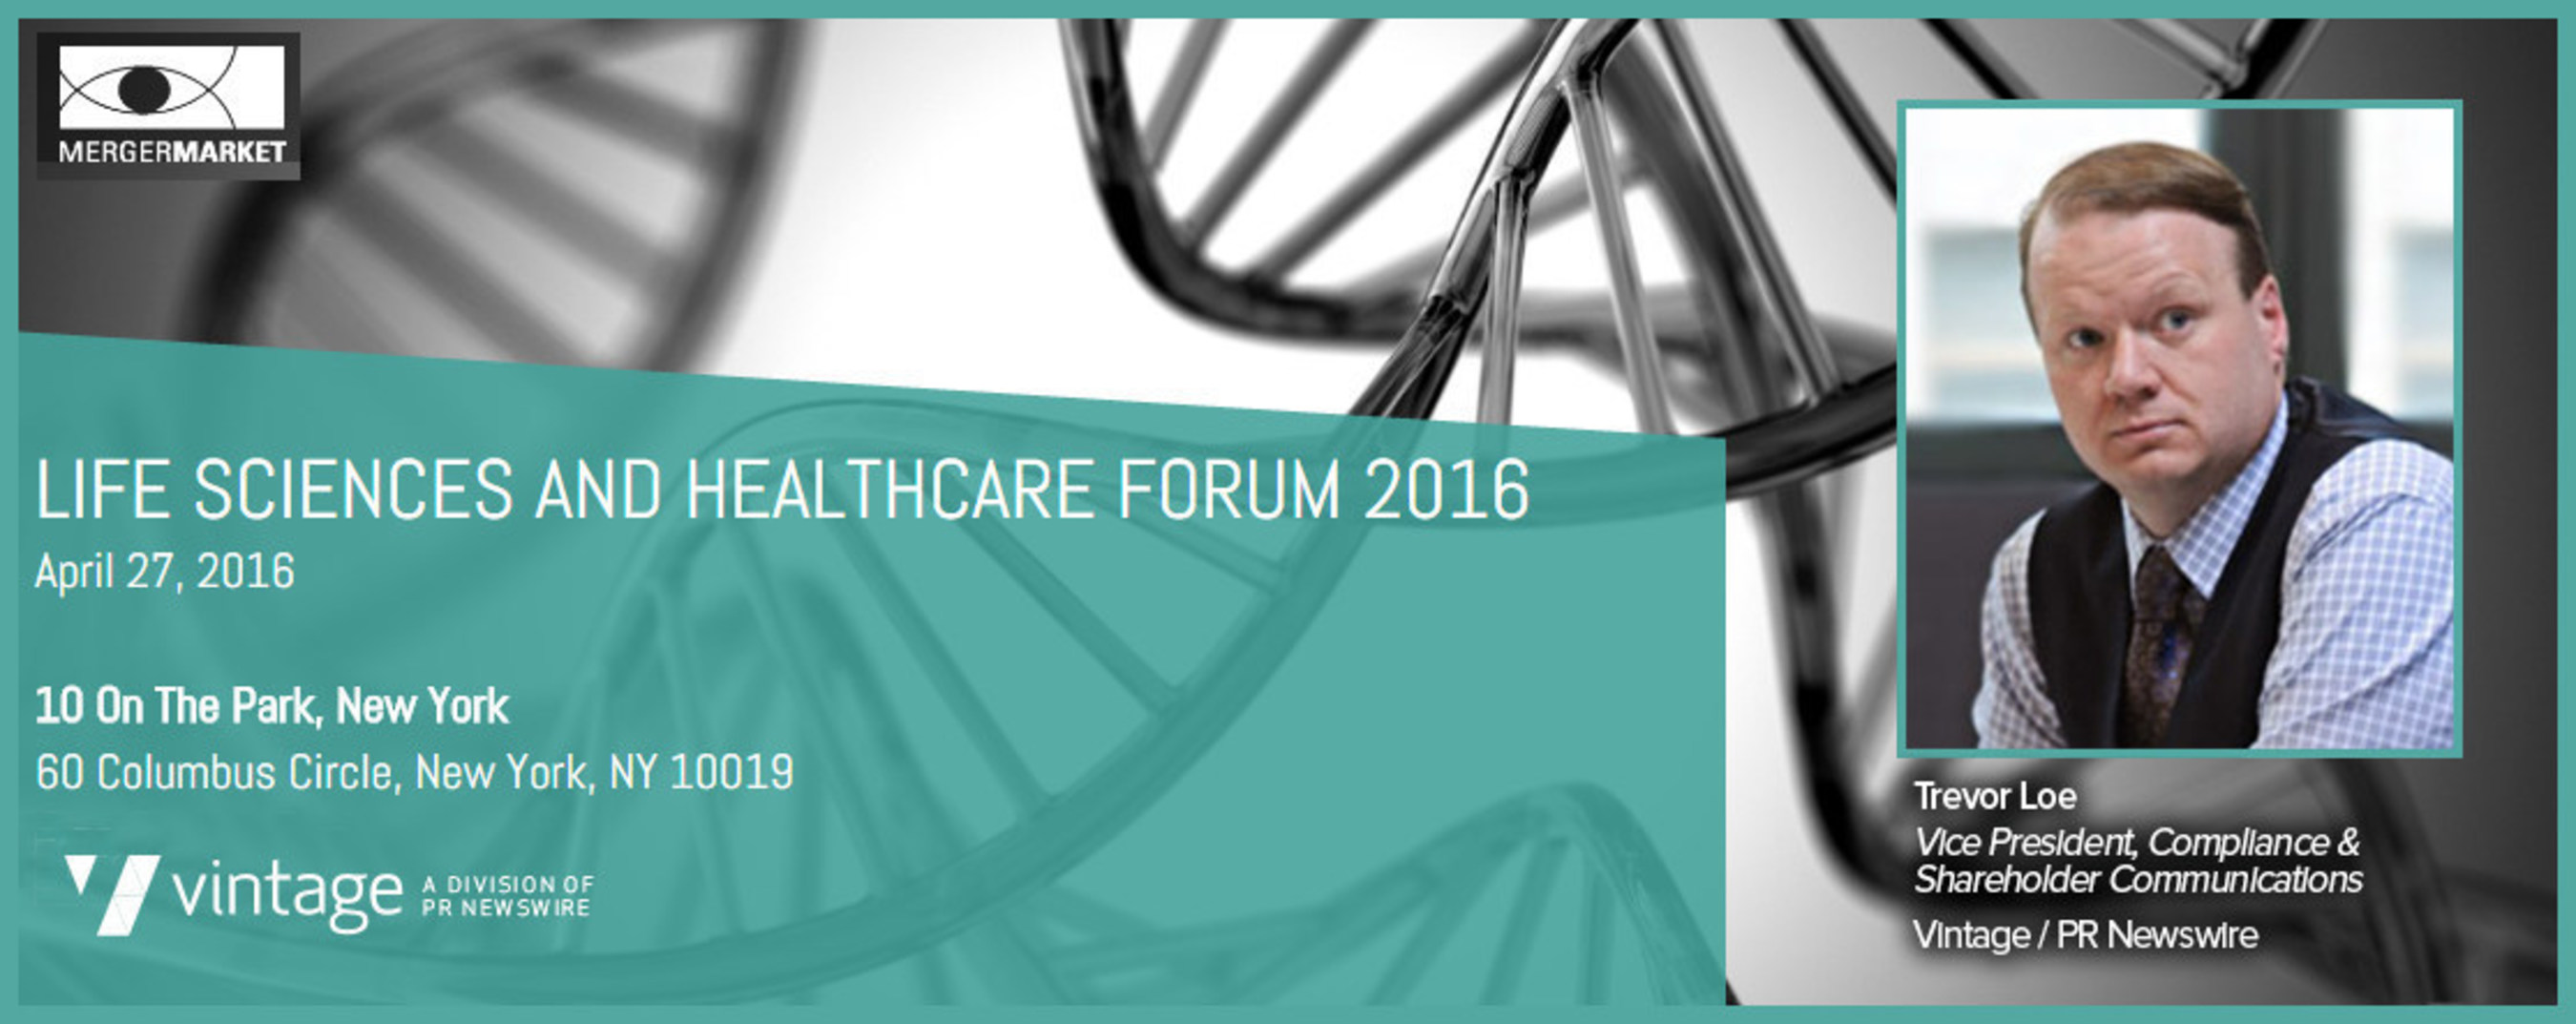 Vintage Expert to Lead 'M&A and Private Equity Outlook' Panel at Mergermarket Life Sciences and Healthcare Forum 2016Trevor Loe, Vice President, Compliance & Shareholder Communications joins Bain Capital, Goldman Sachs, Morgan Stanley and Warburg Pincus executives to discuss 2016 trends